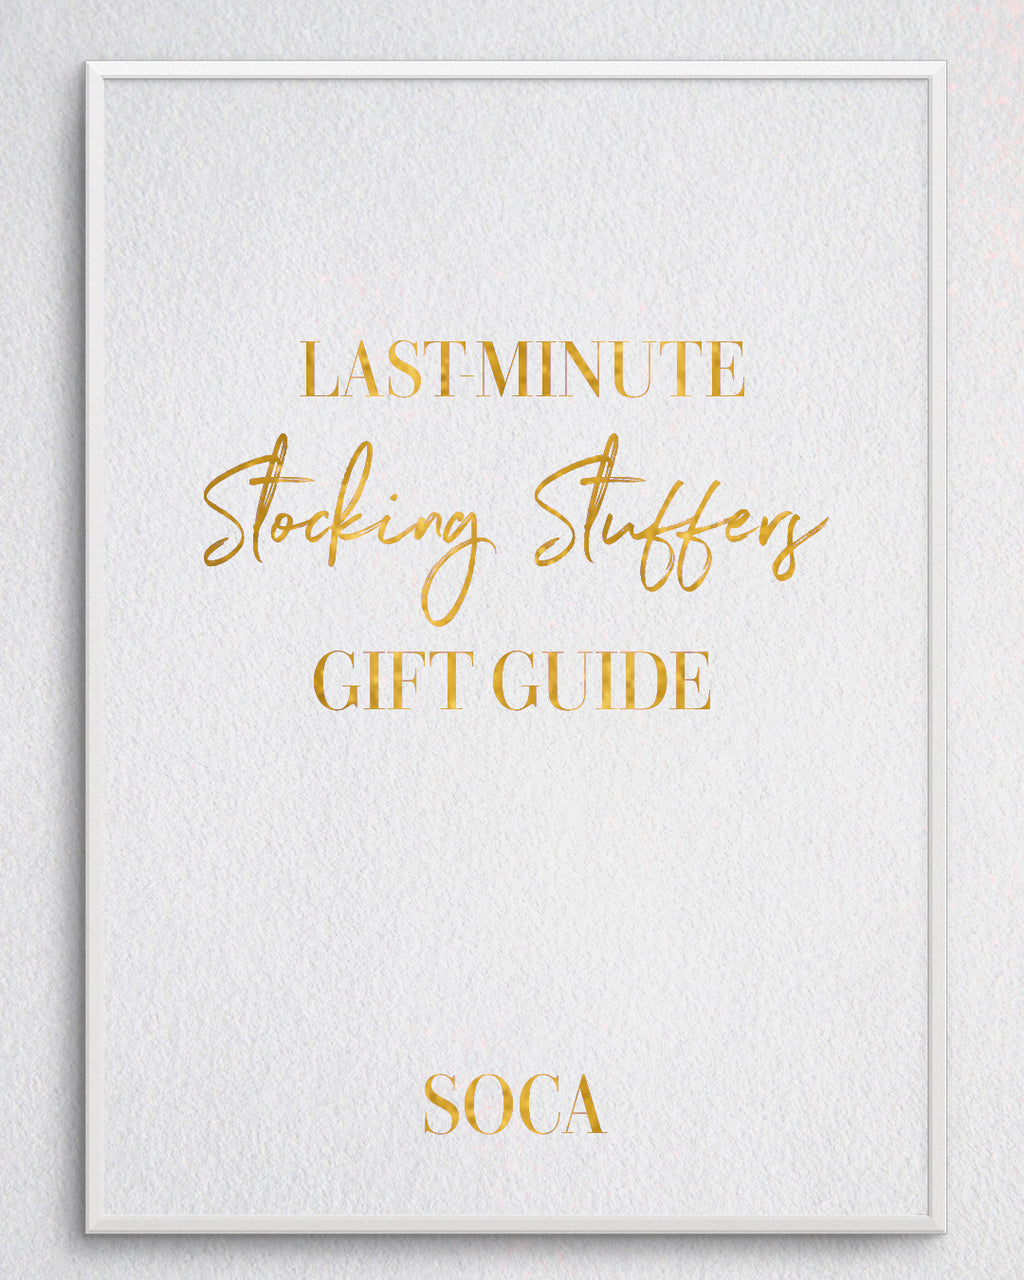 LAST-MINUTE STOCKING STUFFERS AT SOCA